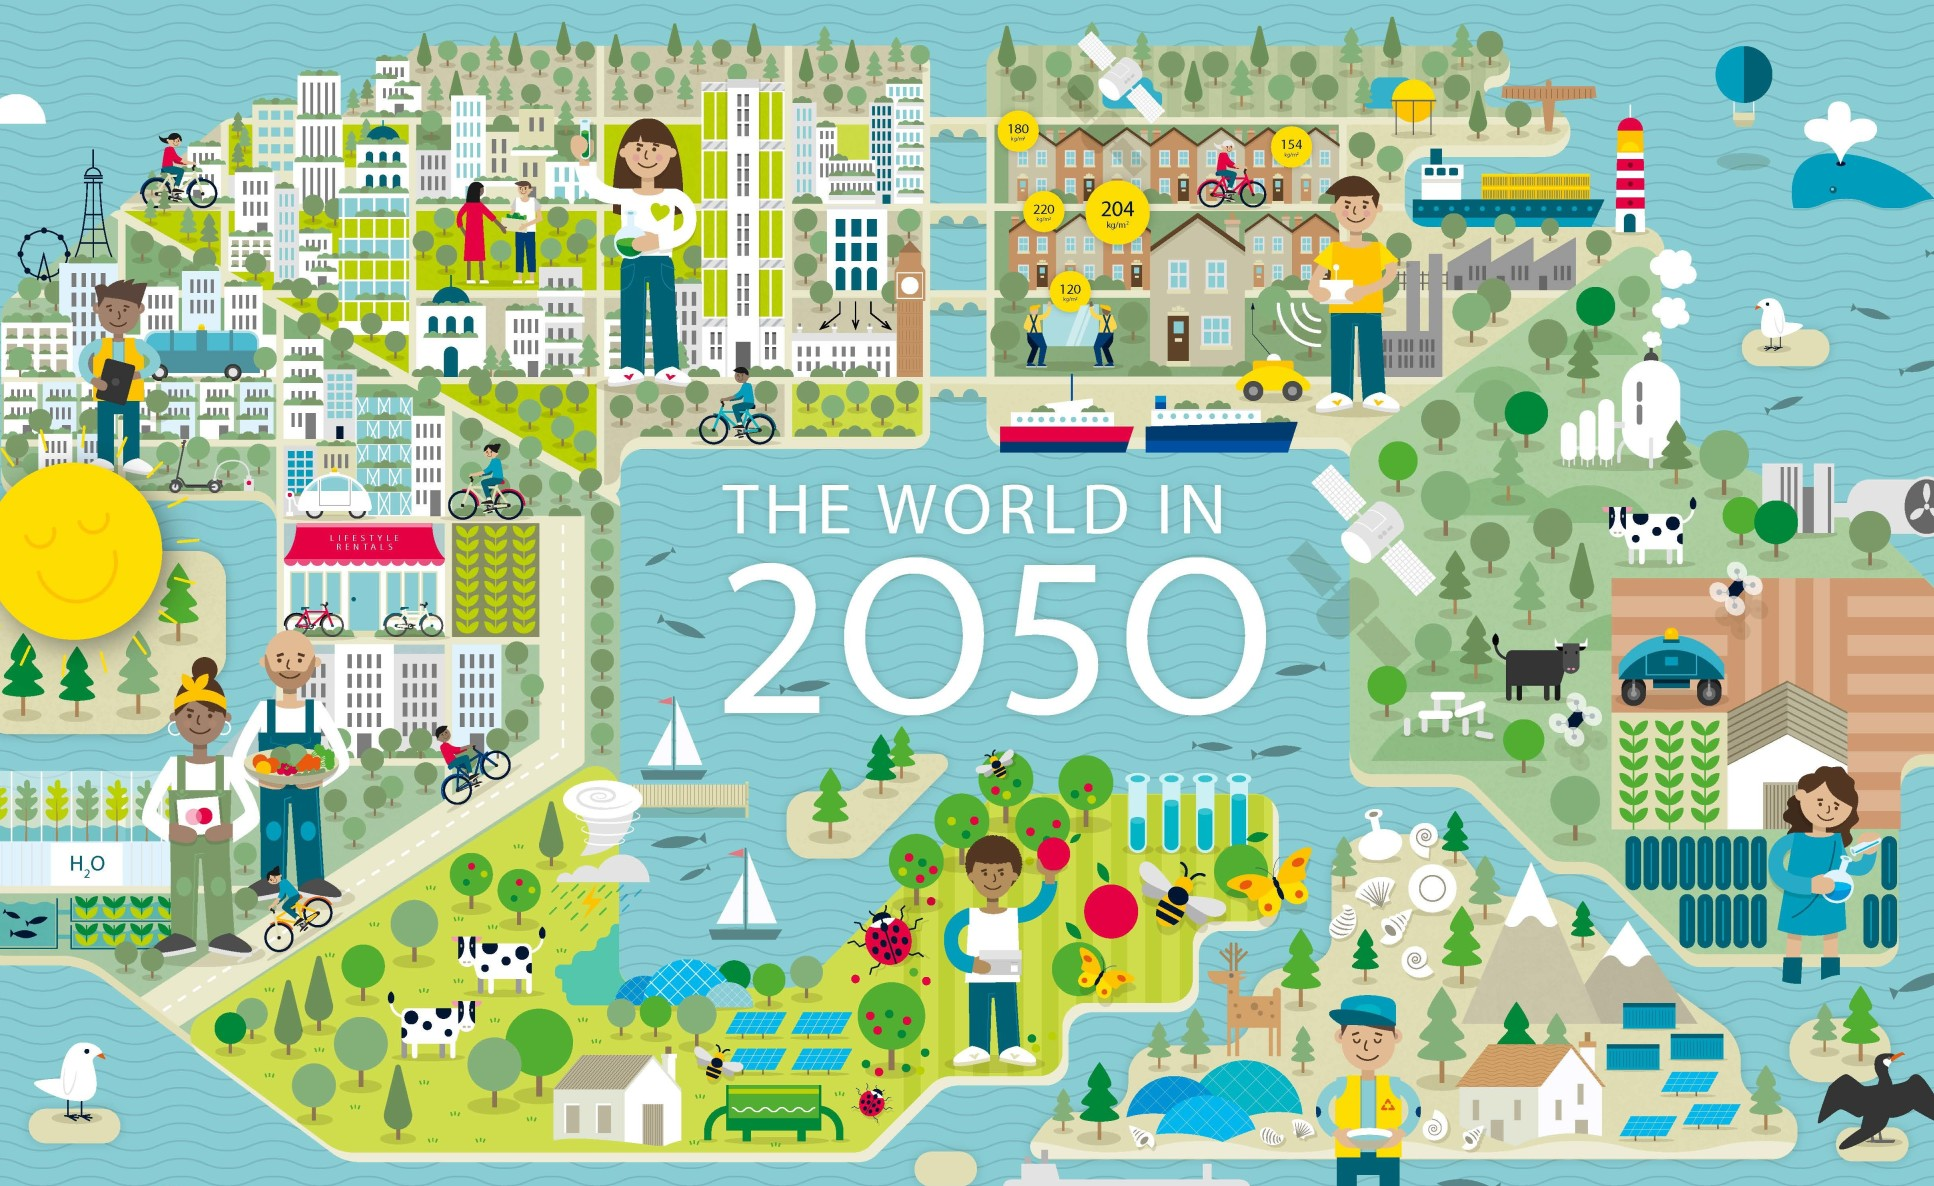 Illustrated graphic depicting a 'map' of the world in 2050. This idyllic scene shows a land with four islands that are home to a mixture of rural and urban scenes, with people of different ethnicities doing a mixture of science, agricultural jobs and everyday tasks, and various types of technology including drones, solar panels, green buildings ships and electric cars. Full description of the contents can be found in the text at https://imperialtechforesight.com/the-world-in-2050/